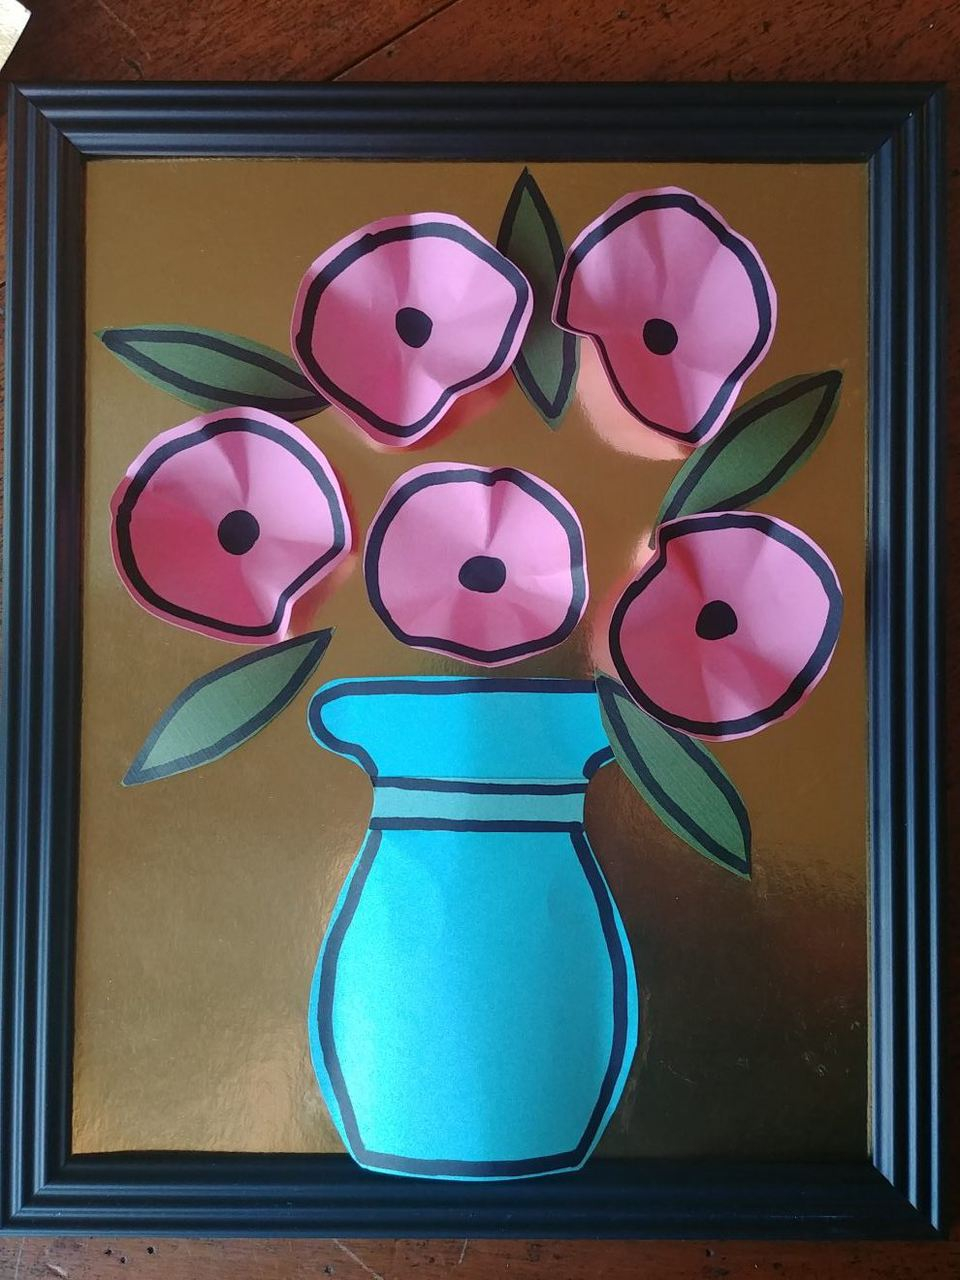 Floral 3d wall hanging DIY Inspire Flower Crafts Ideas Your Kids Can Create With Or Without You